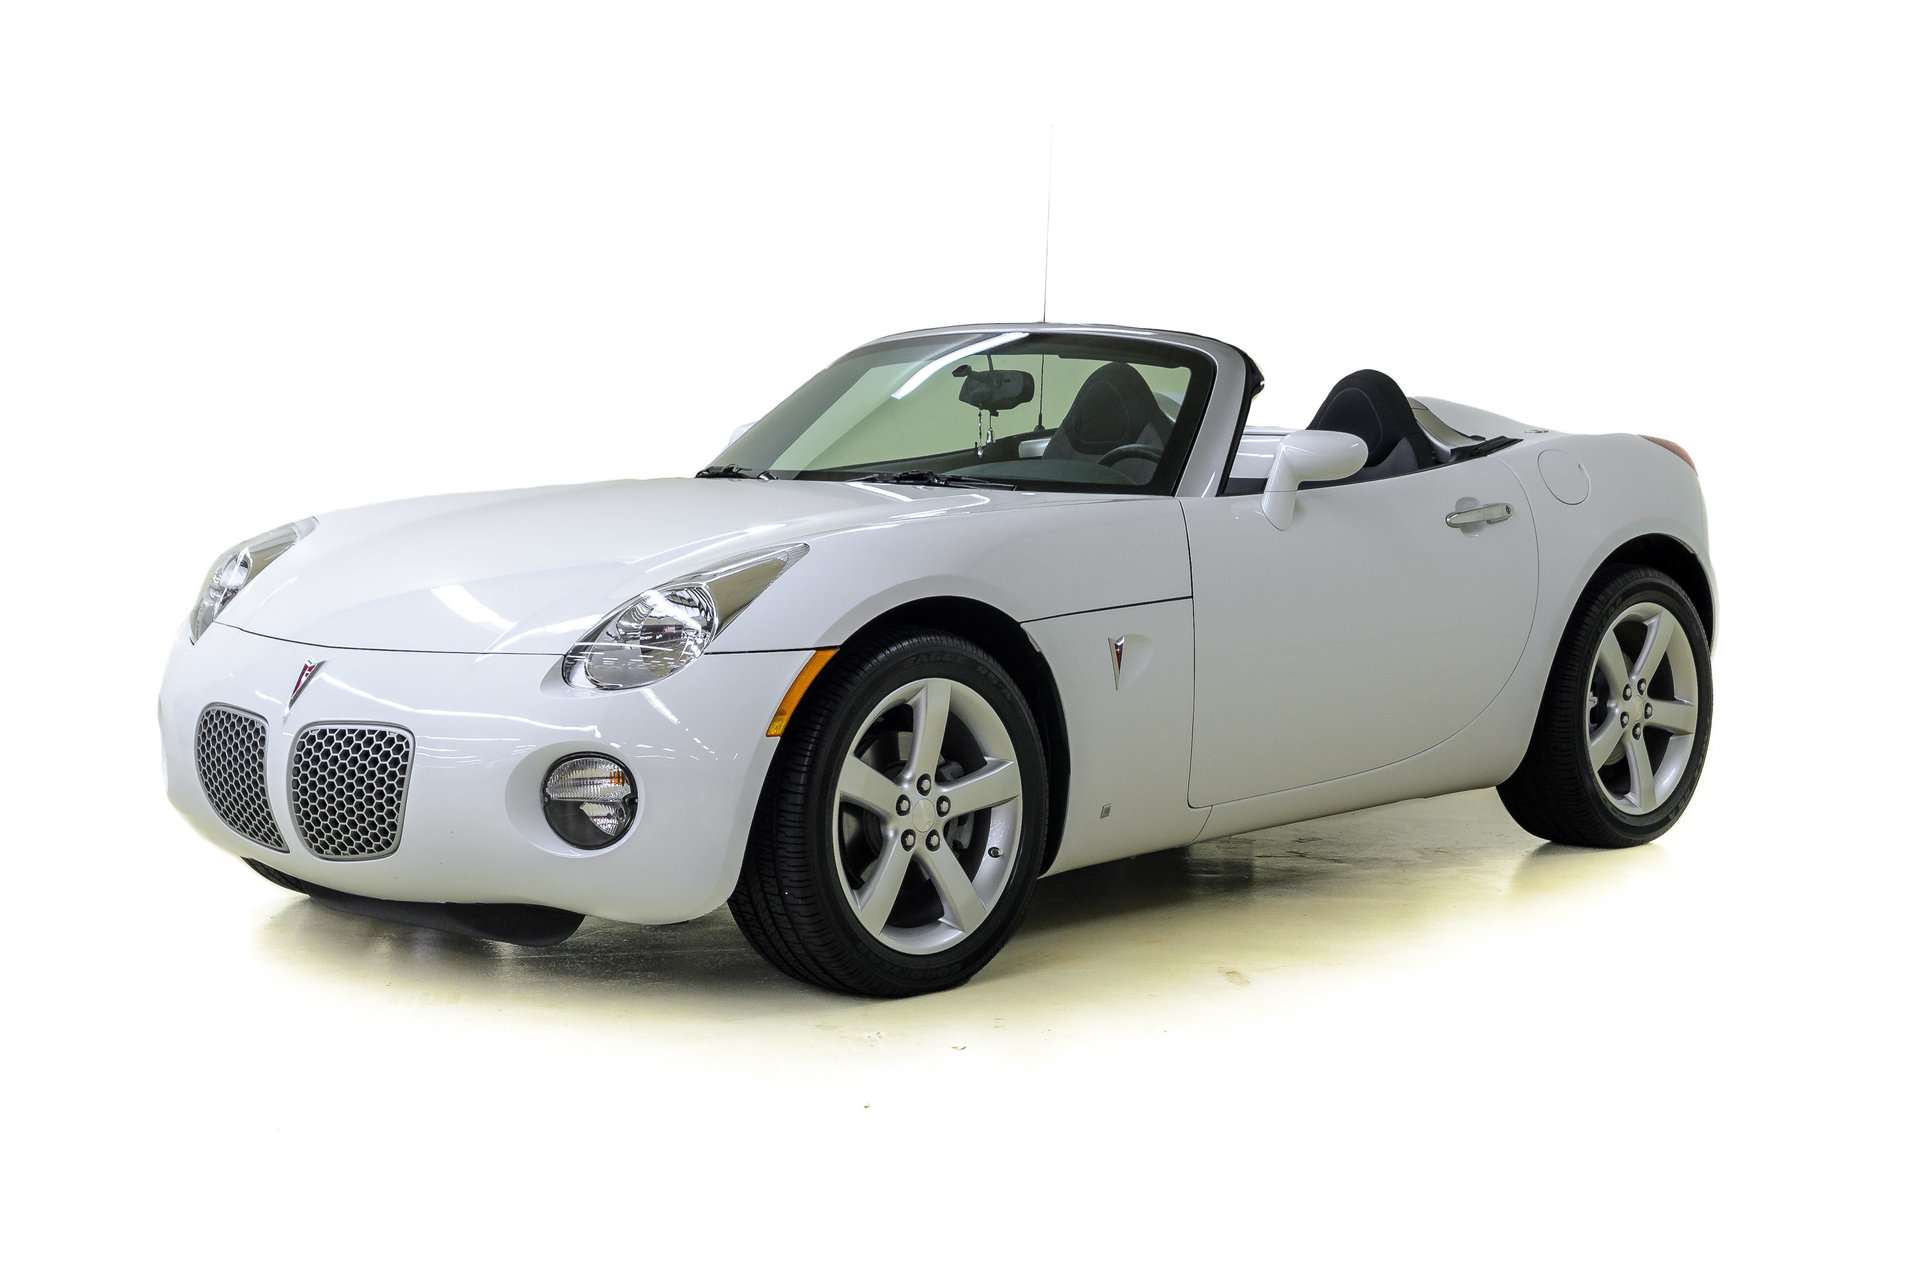 2008 pontiac solstice for sale 69478 mcg. Black Bedroom Furniture Sets. Home Design Ideas